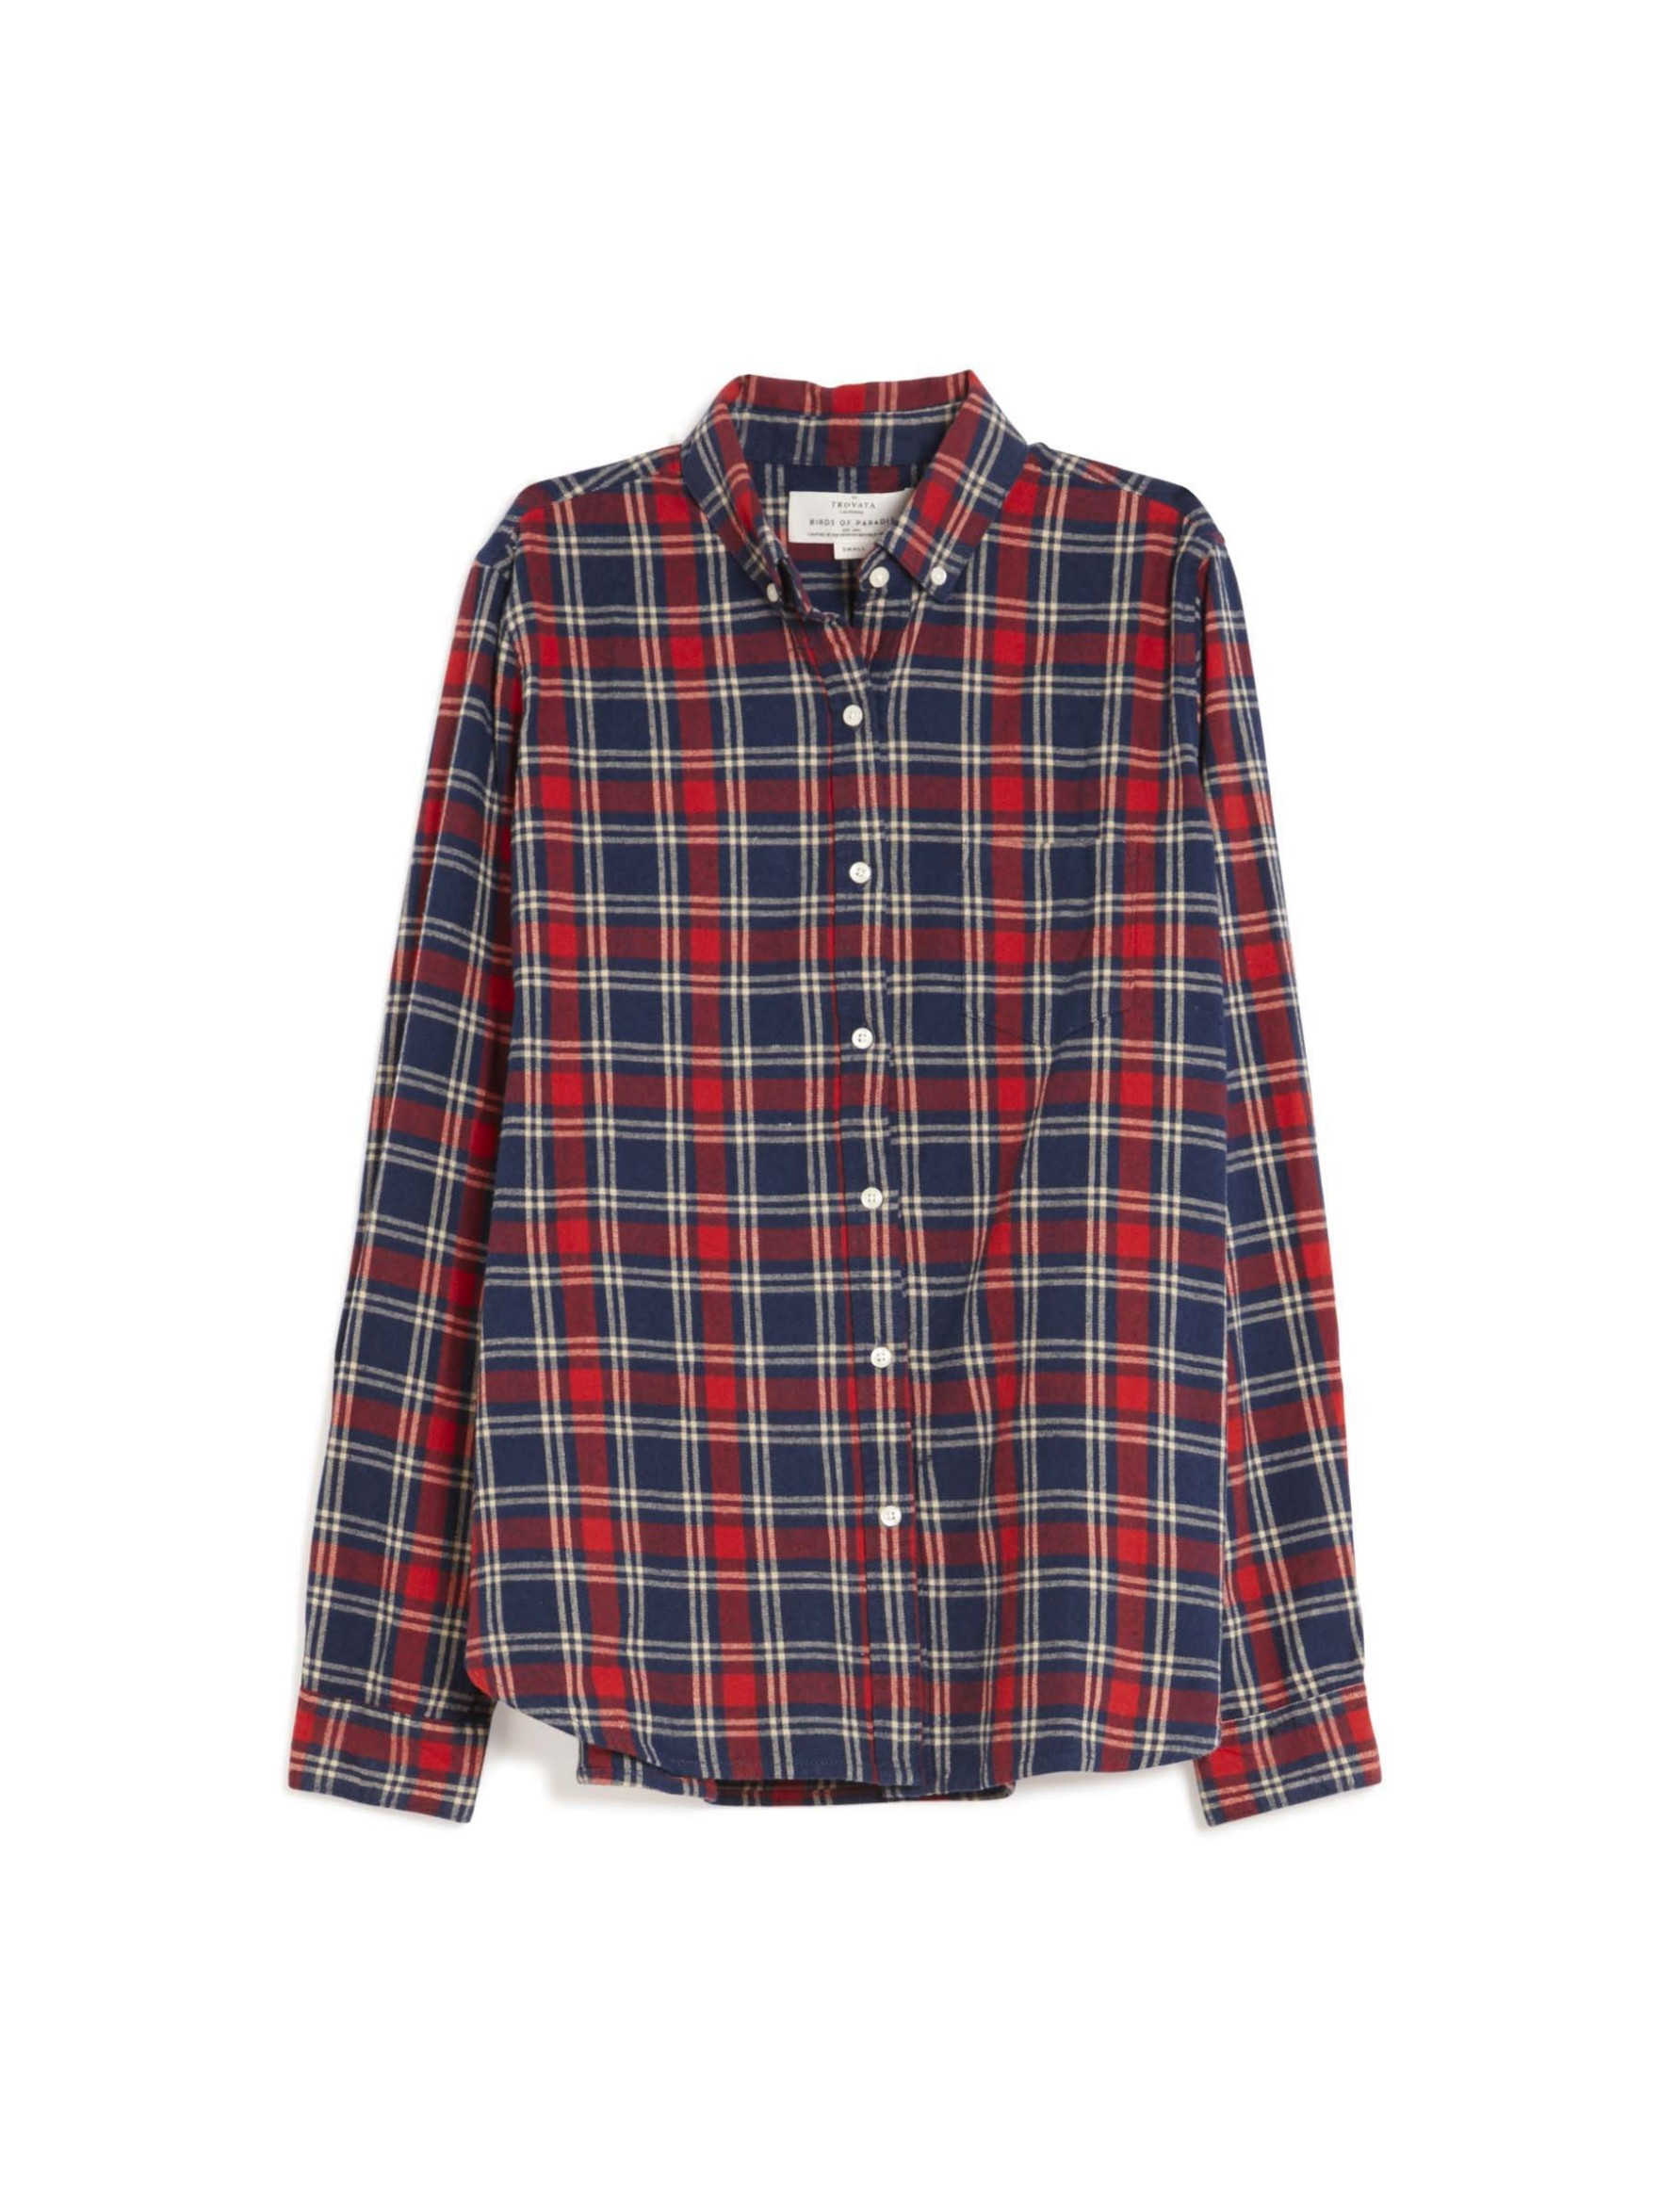 Birds of paradis classic plaid shirt in blue navy red for Navy blue plaid shirt